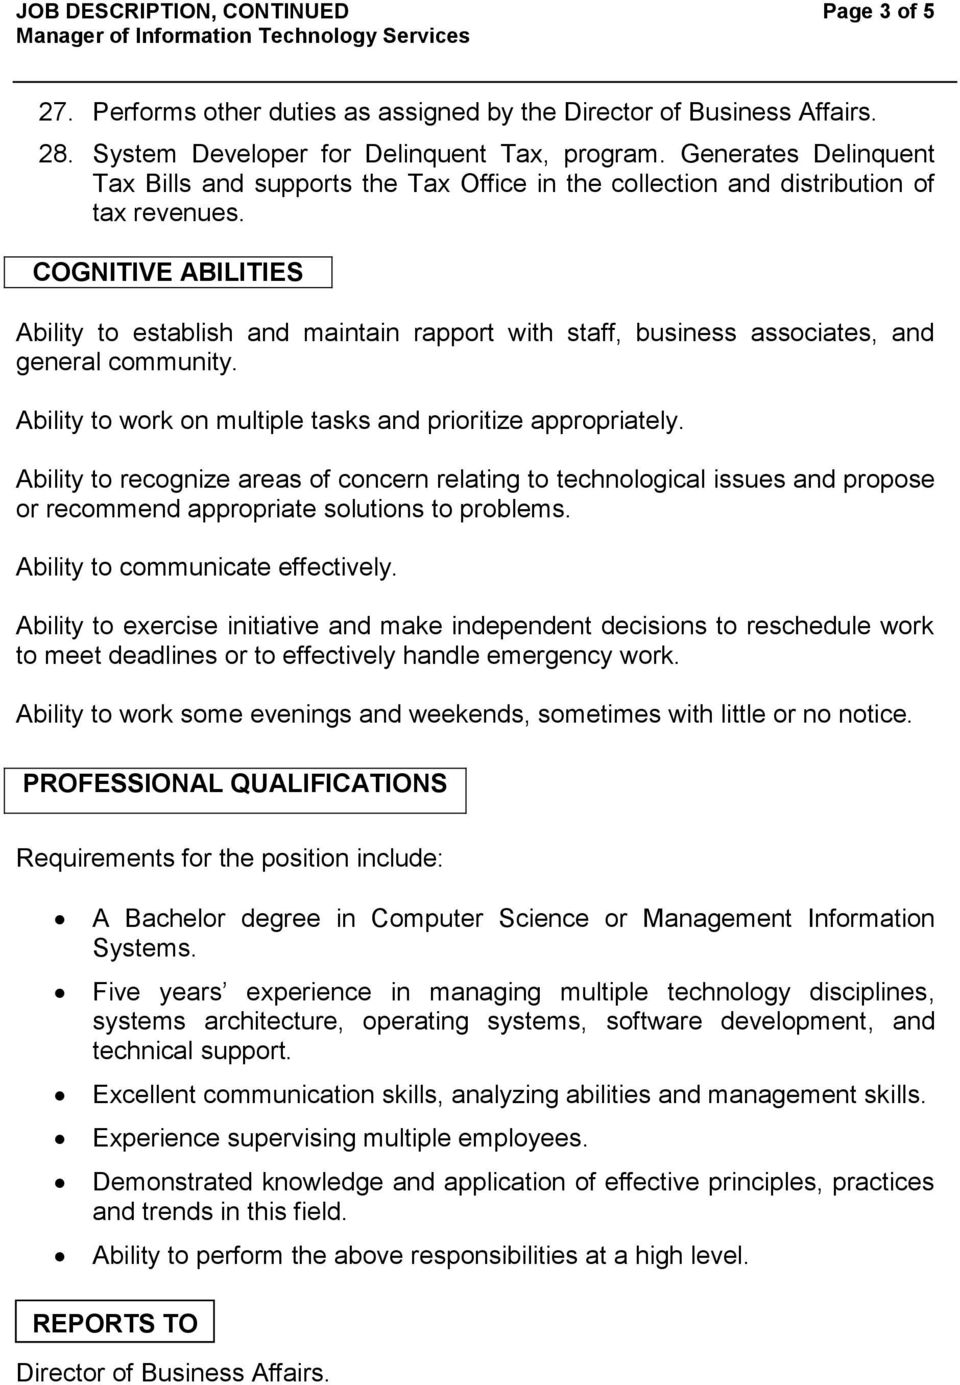 COGNITIVE ABILITIES Ability to establish and maintain rapport with staff, business associates, and general community. Ability to work on multiple tasks and prioritize appropriately.